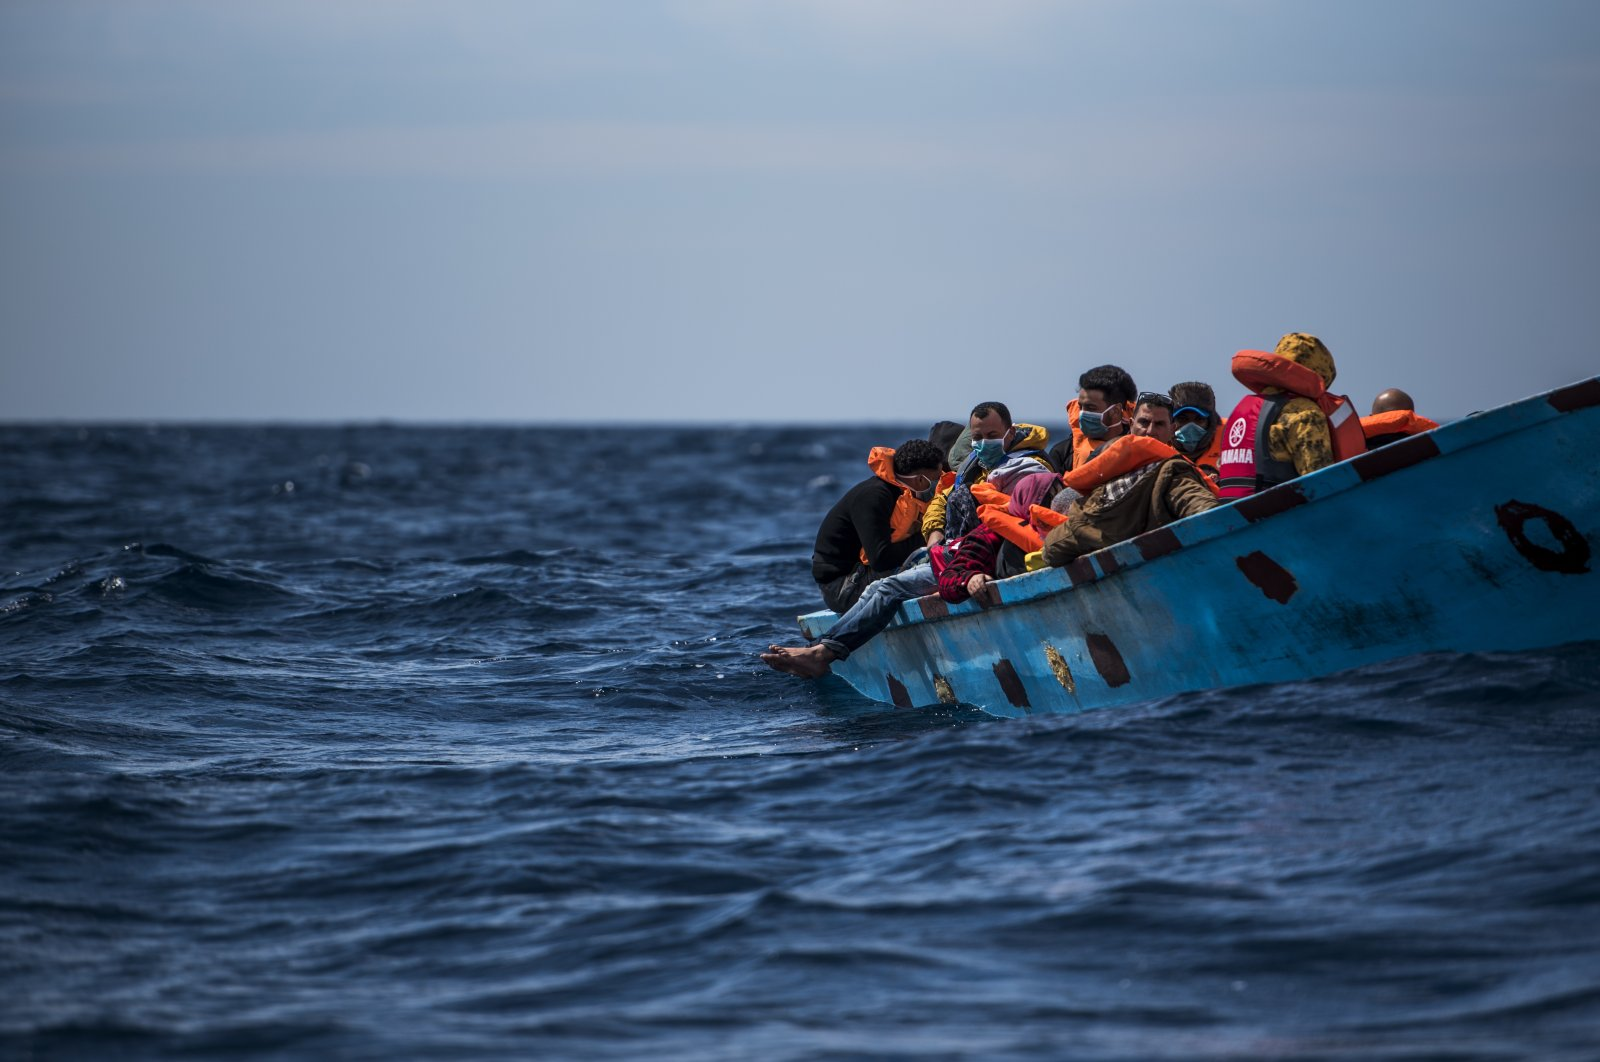 Before it was rescued by a nongovernmental organization in Barcelona, Spain, a wooden boat with 38 migrants of various nationalities, the majority of whom were Libyans, bobs in the Malta Search and Rescue (SAR) Zone, March 27, 2021. (Photo by Getty Images)